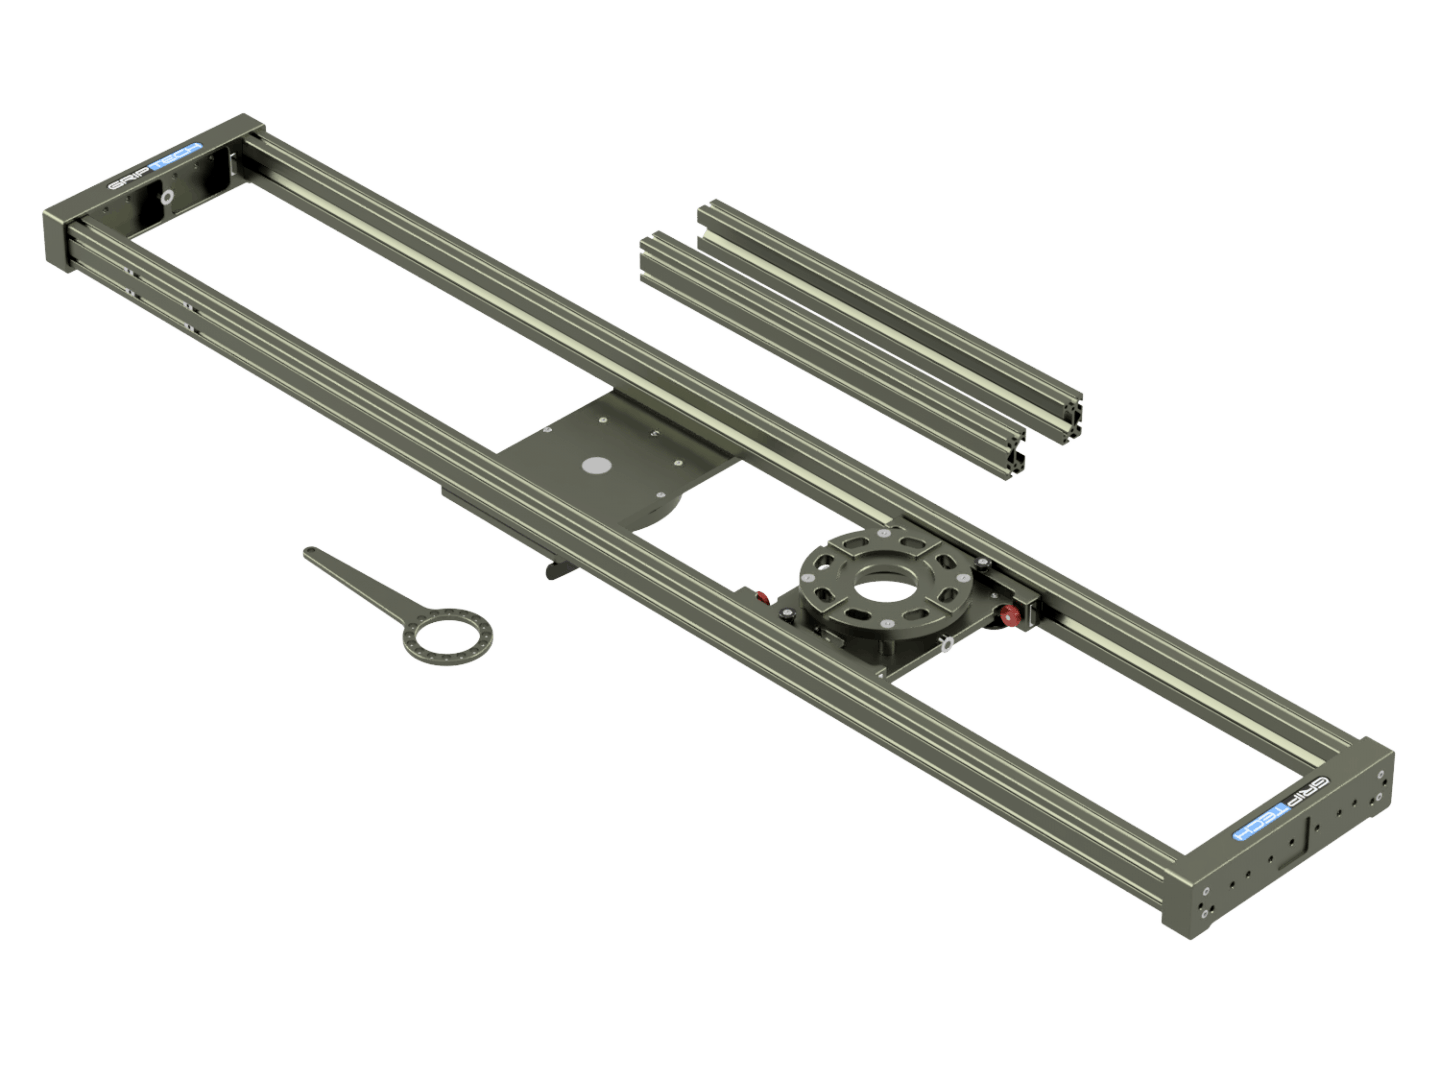 6 Foot Slider(≈1.9m)Including 2ft Rail SetIncluding Flight Case  (accommodates 3ft + 4ft Rail Sets)